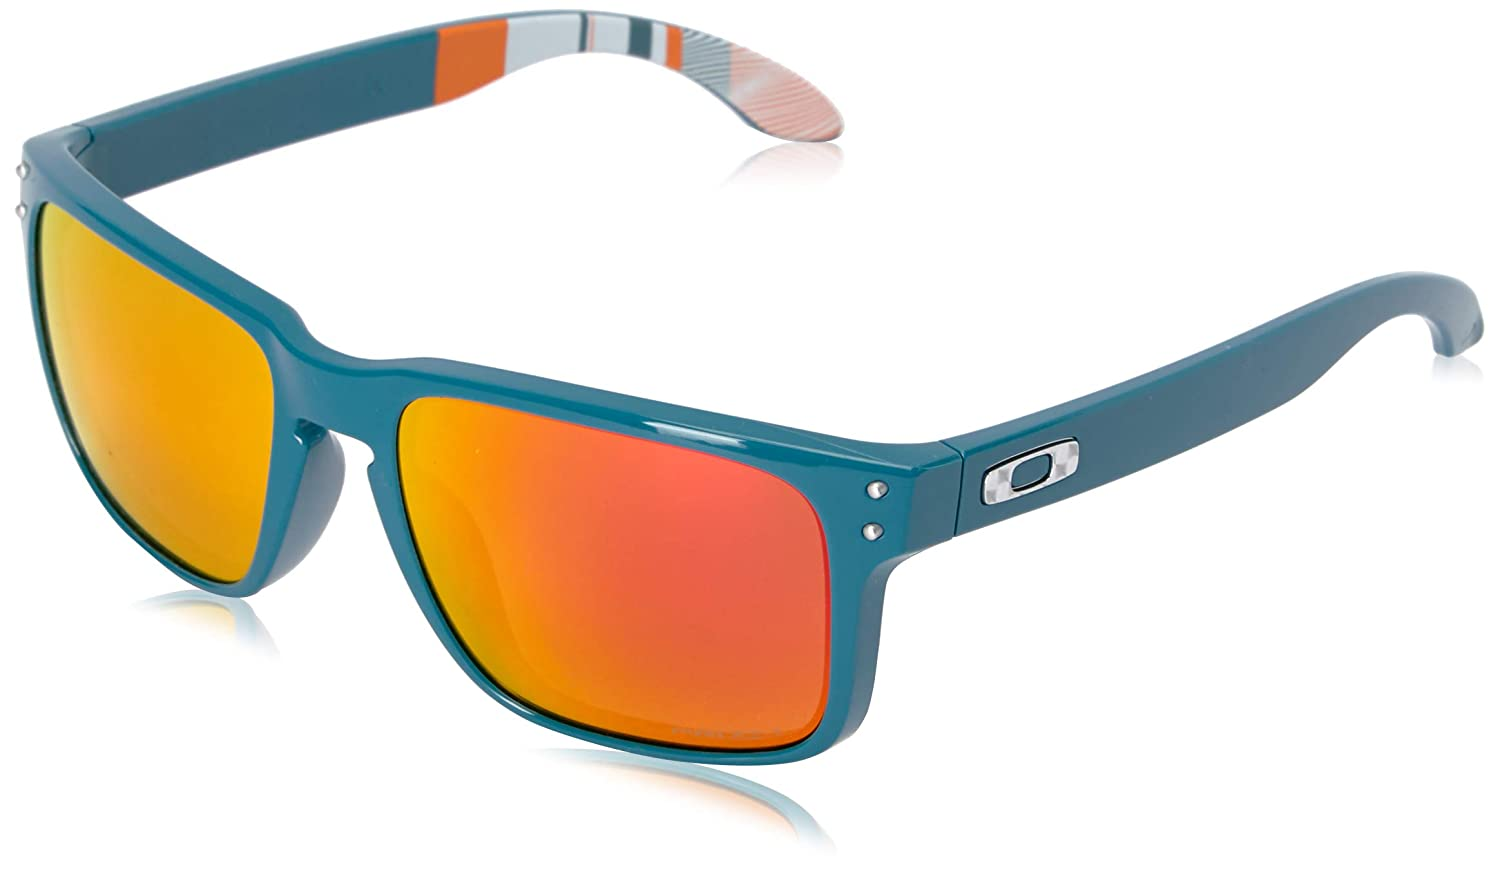 80cbe2c699ee3 Amazon.com  Oakley Men s Holbrook Non-Polarized Iridium Square Sunglasses,  Aero Baslam, 57.0 mm  Clothing